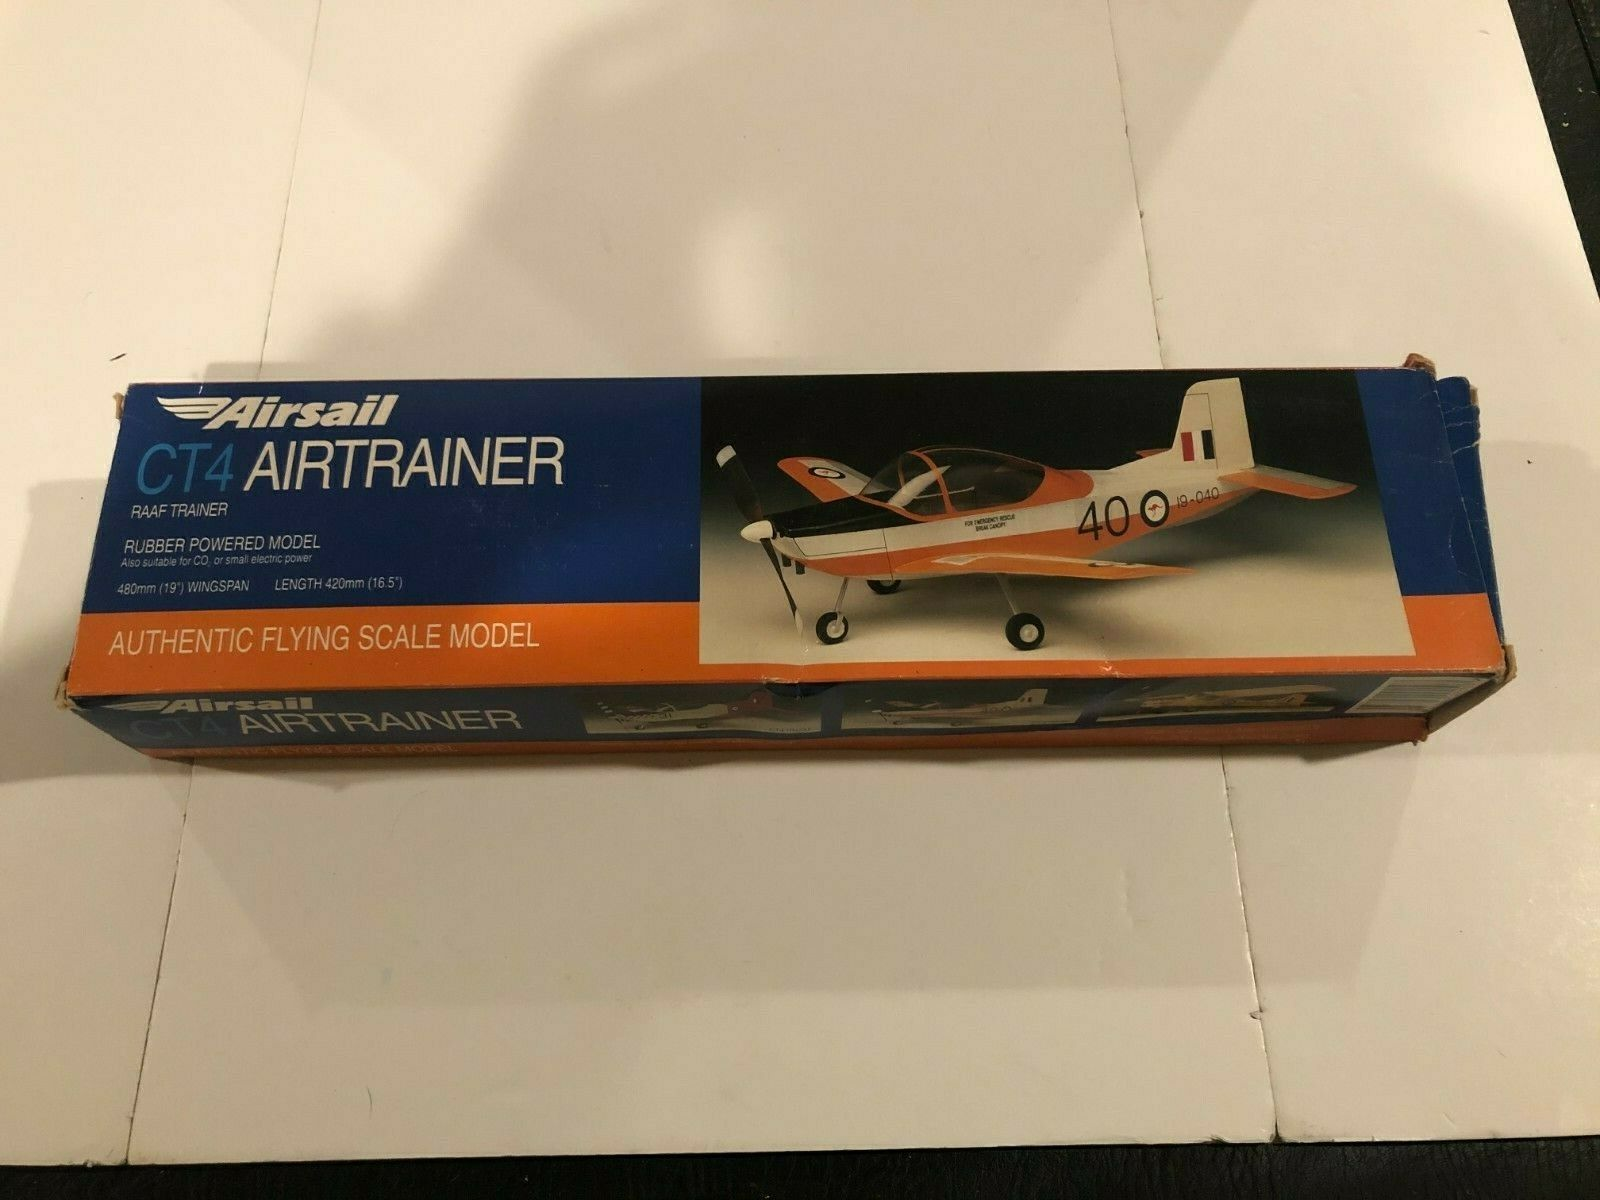 Airsail CT4 Airtrainer Aircraft Rubber Powered Flying Scale Model - $22.56